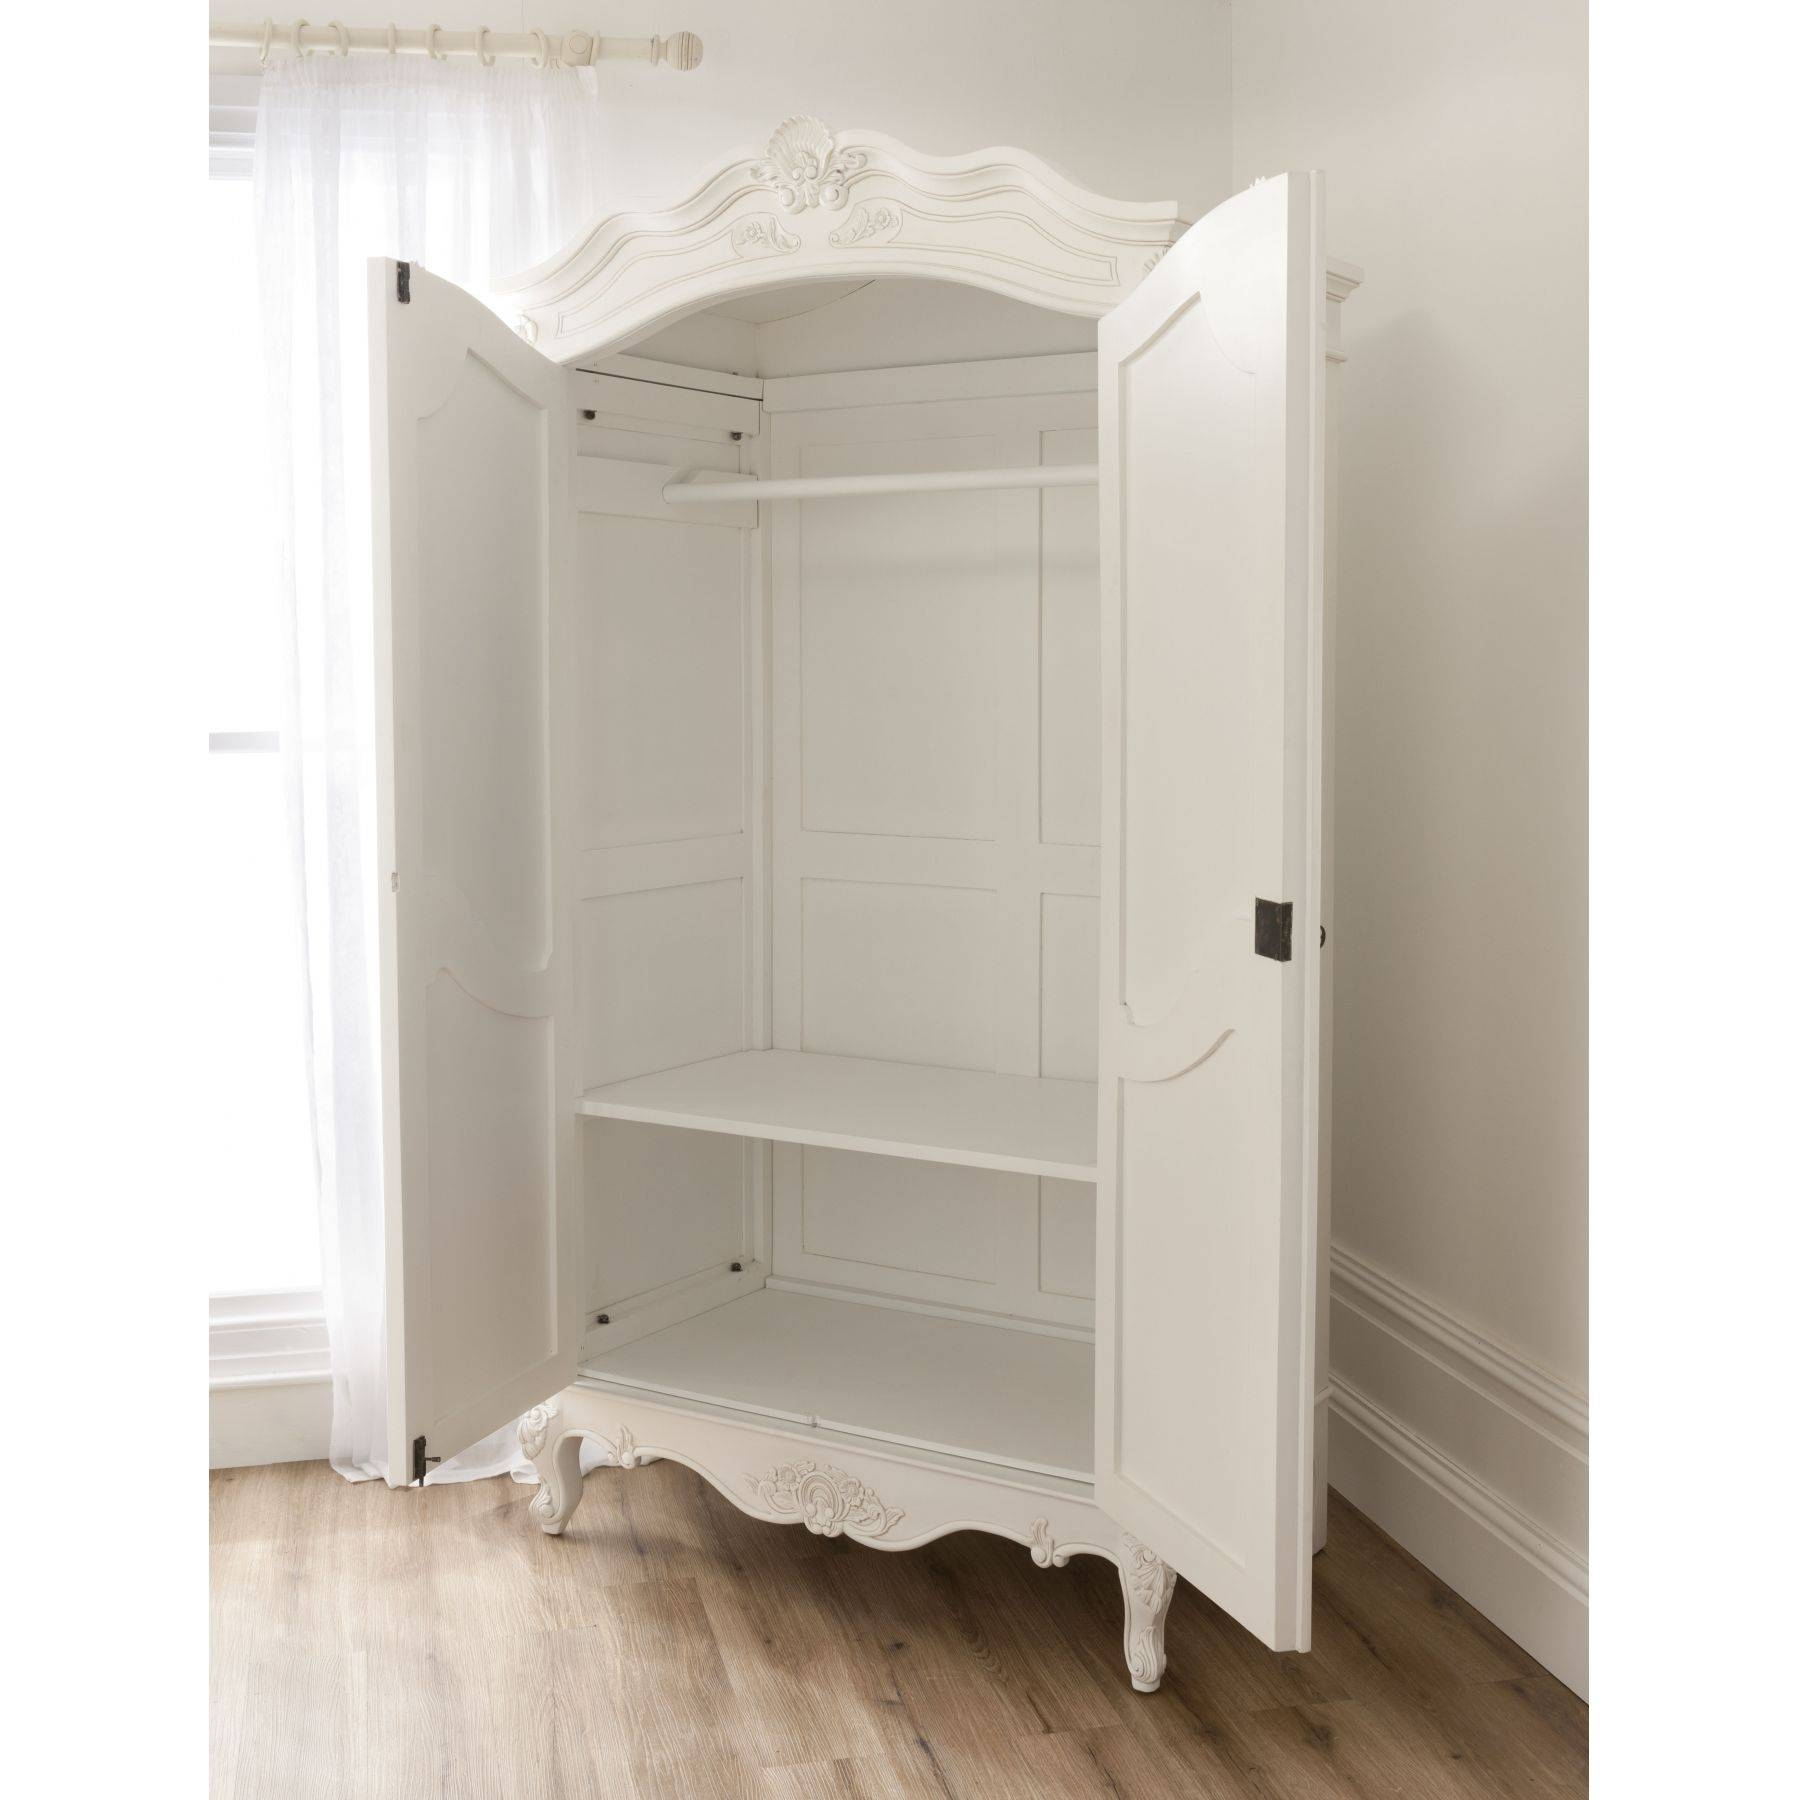 Baroque Antique French Wardrobe Is Available Online From in White Wardrobes French Style (Image 1 of 15)